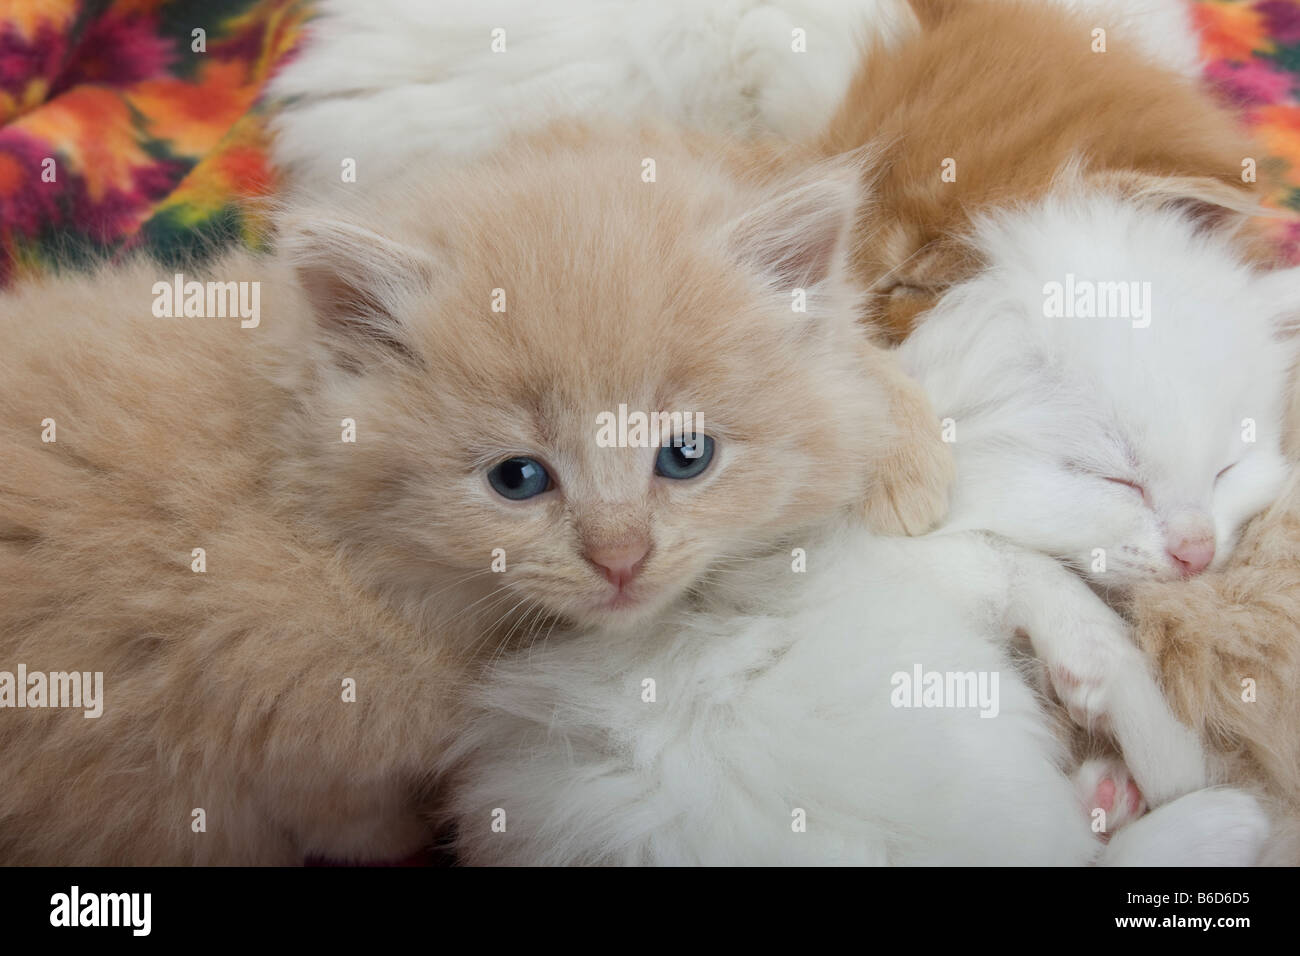 Group Of Four 6 Week Old Long Haired White Ginger Kittens Asleep On